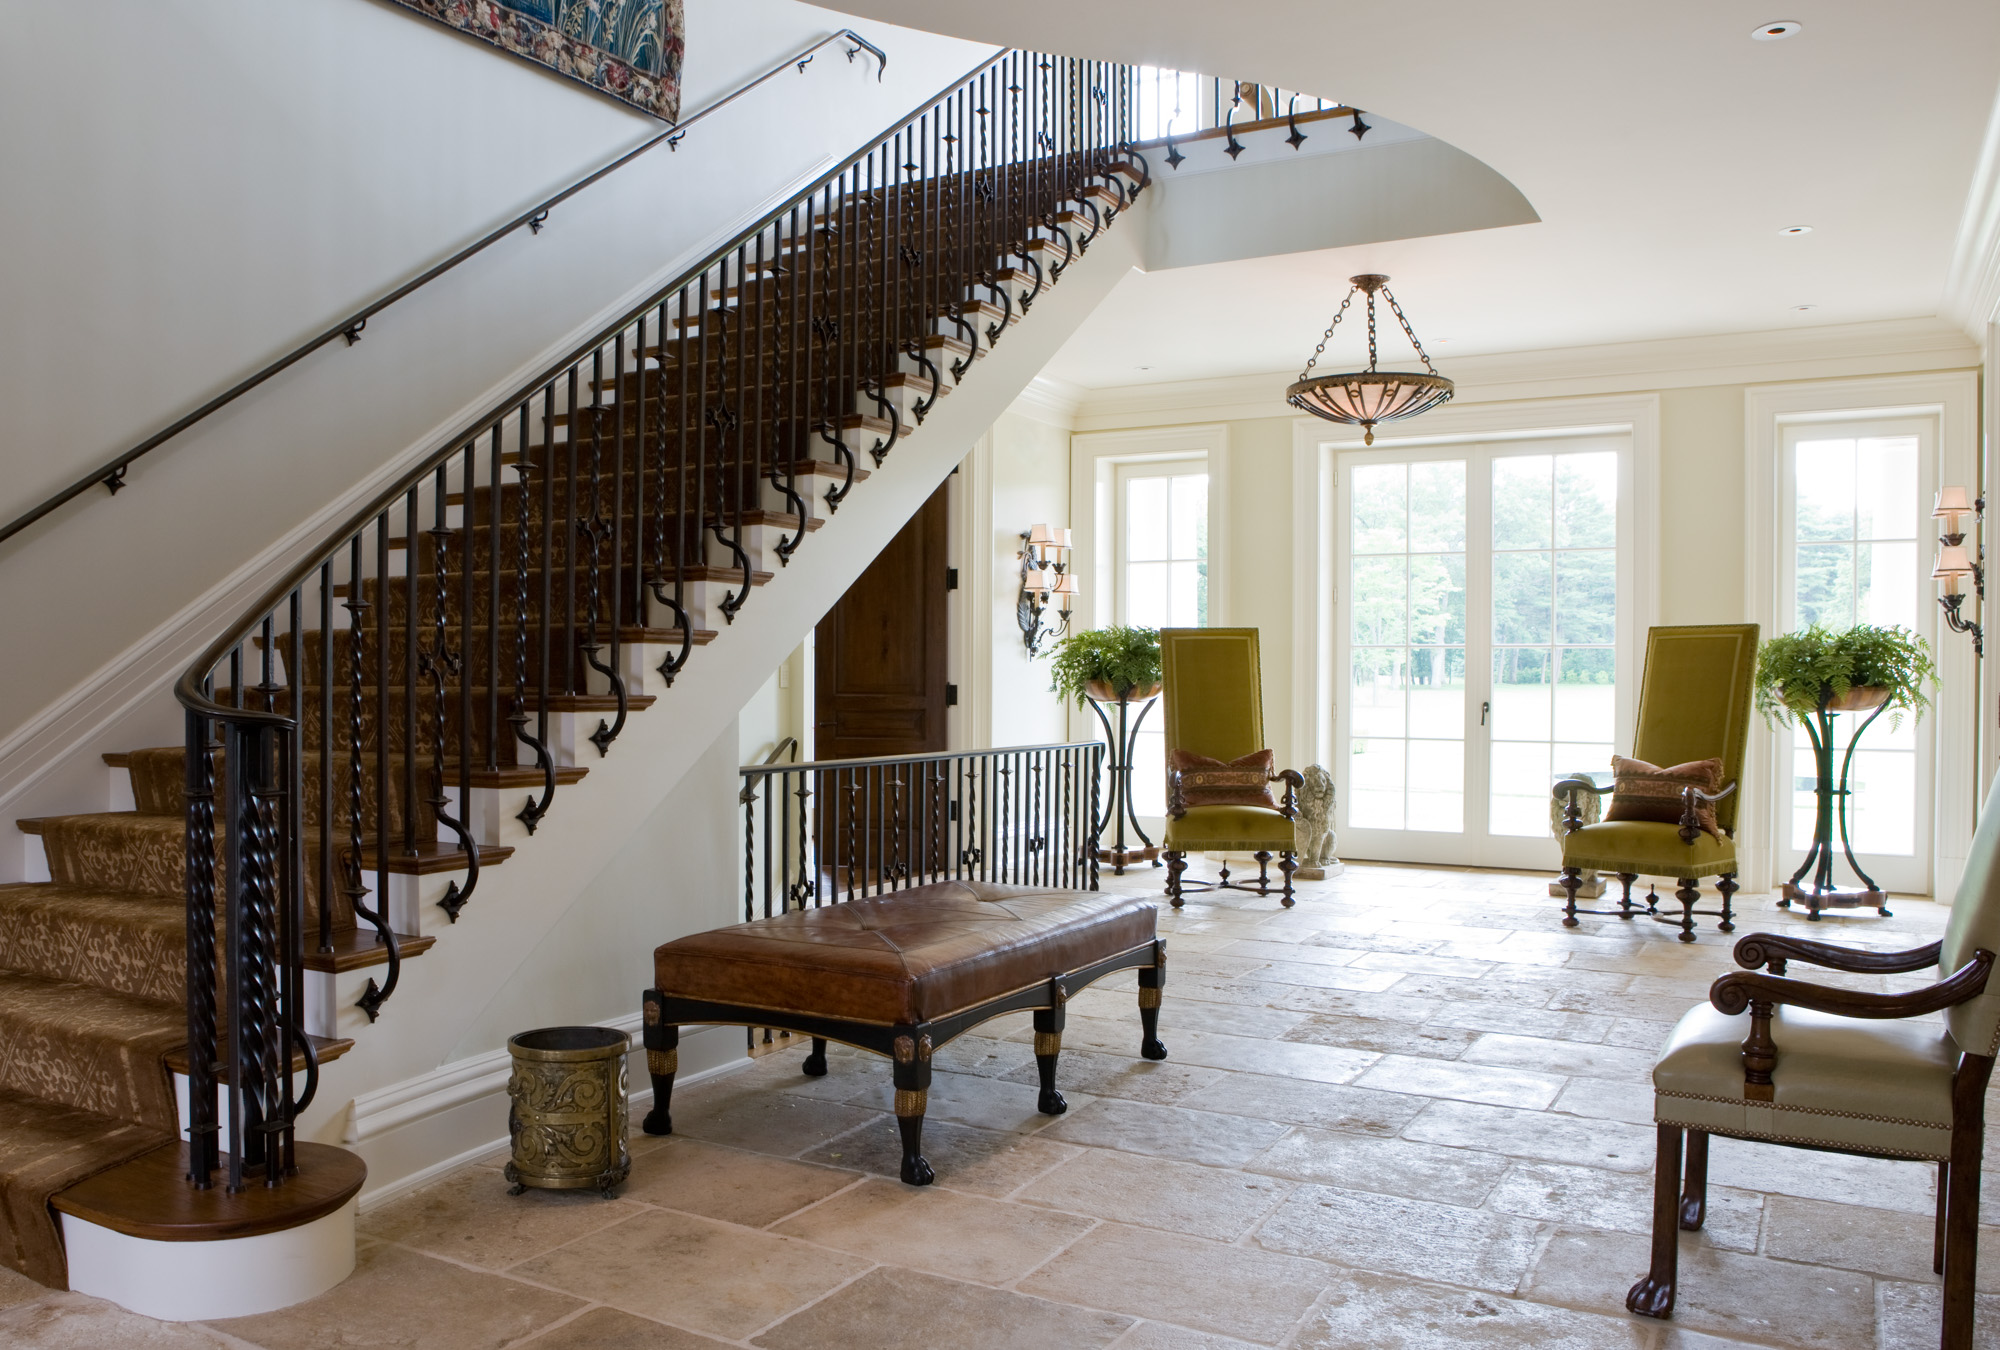 Weston georgian manor slc interiors for Georgian staircase design